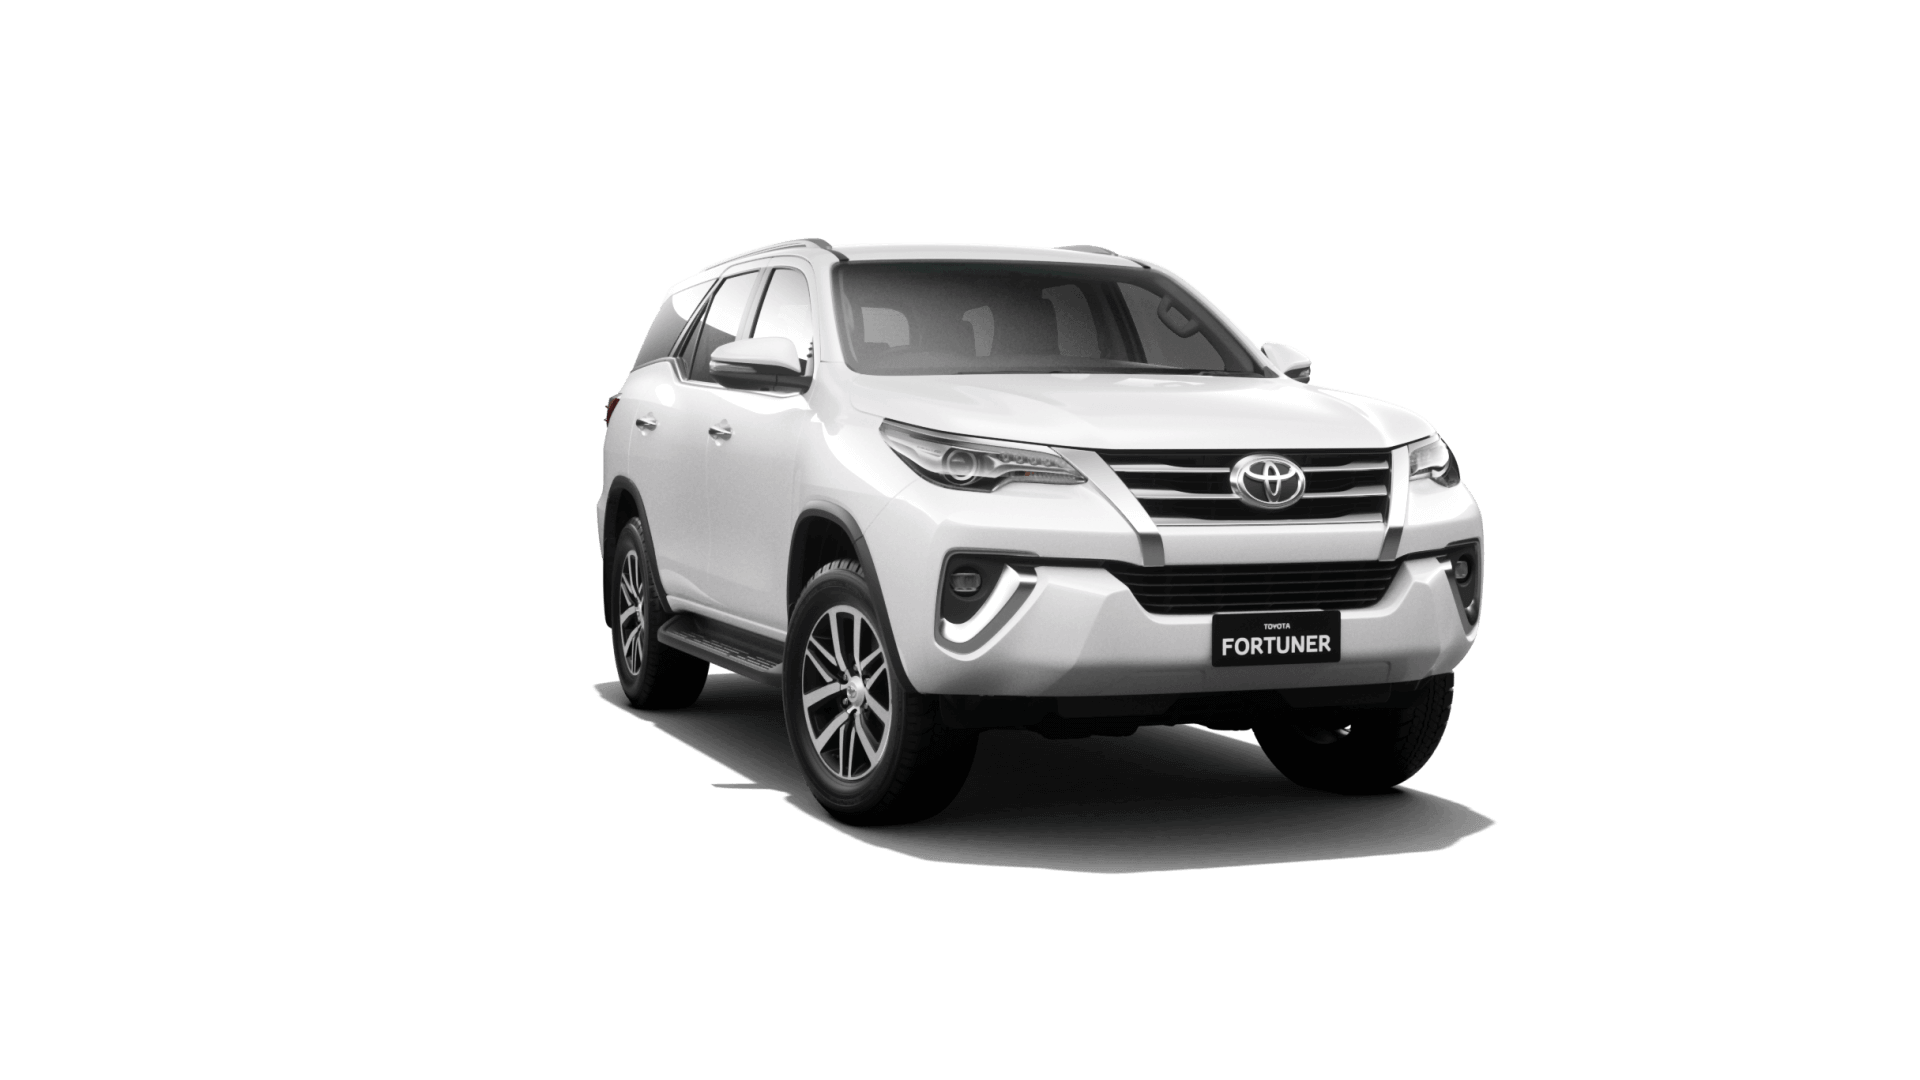 Fortuner Crusade <span>Turbo-Diesel | Auto</span>